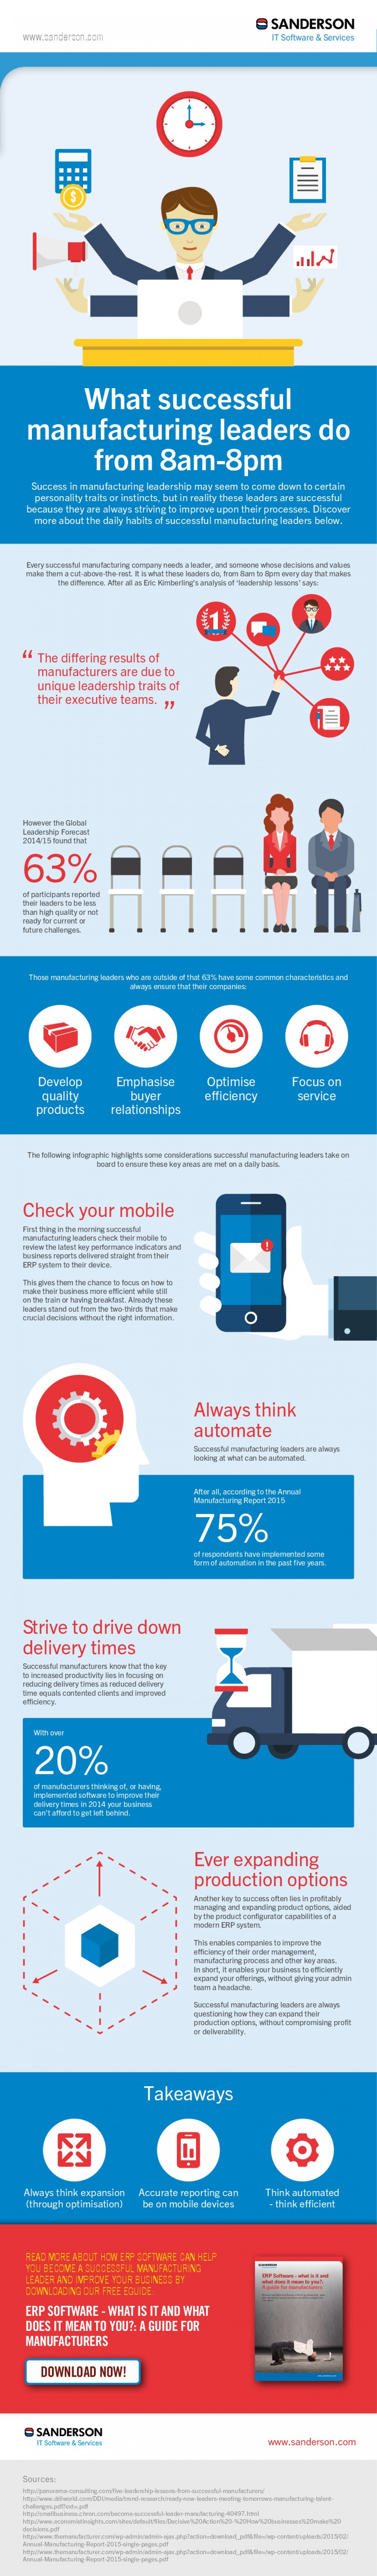 What Successful Manufacturing Leaders Do from 8am-8pm Infographic